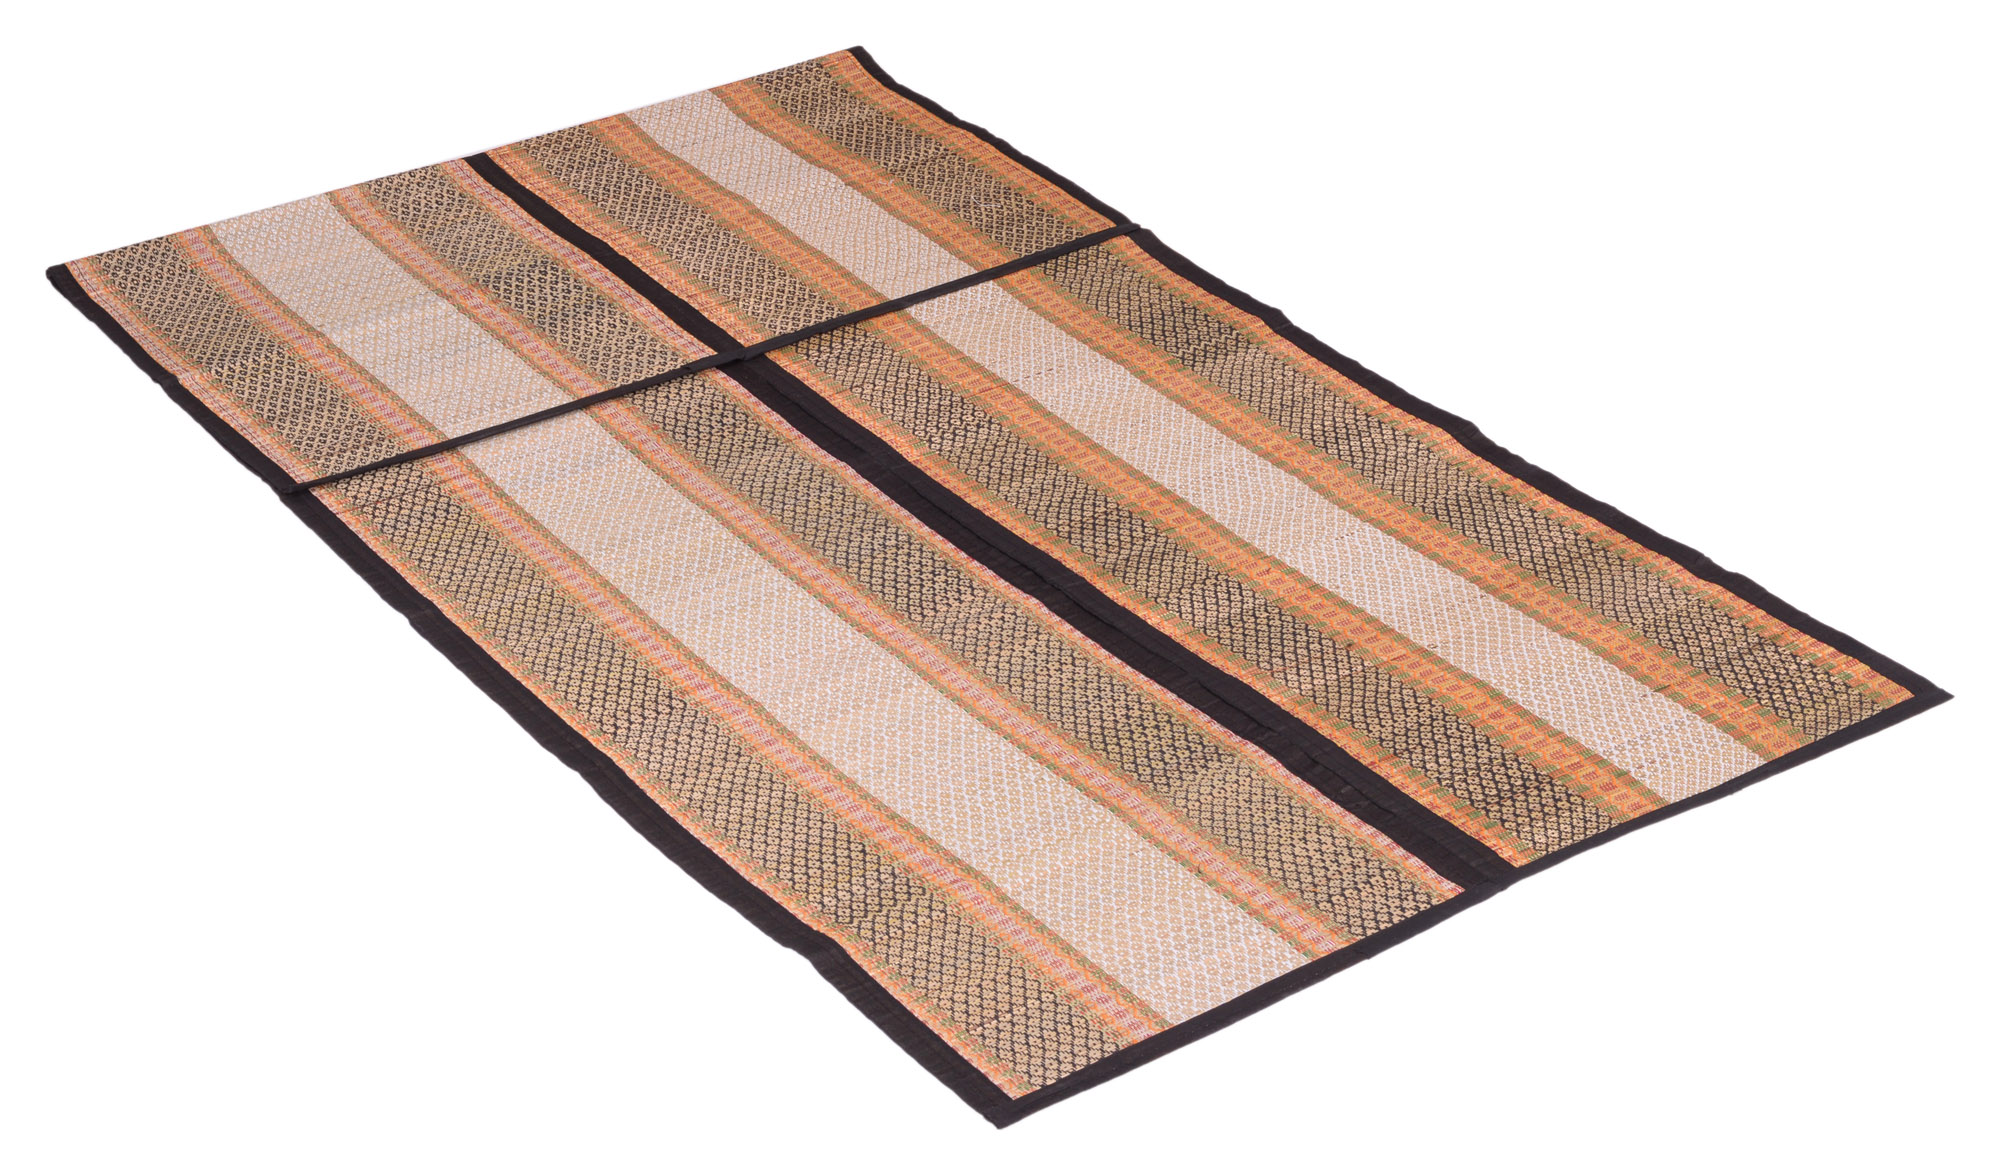 korai grass made floor mat